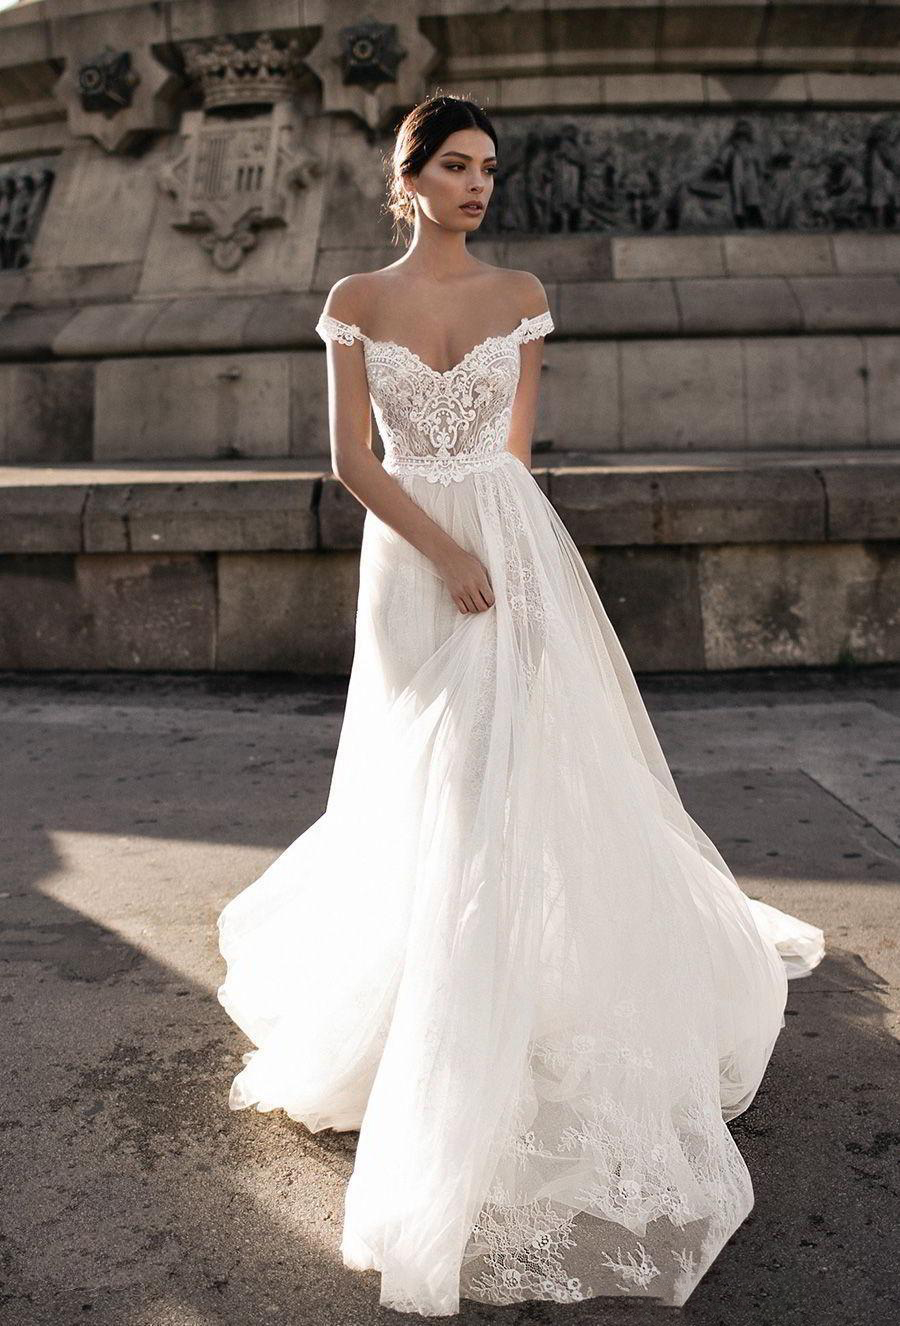 Gali Karten 2018 Sheer Bohemian Wedding Dresses Off the Shoulder Lace Illusion Bodice Tulle Sweep Train Backless Bridal Gowns in Wedding Dresses from Weddings Events